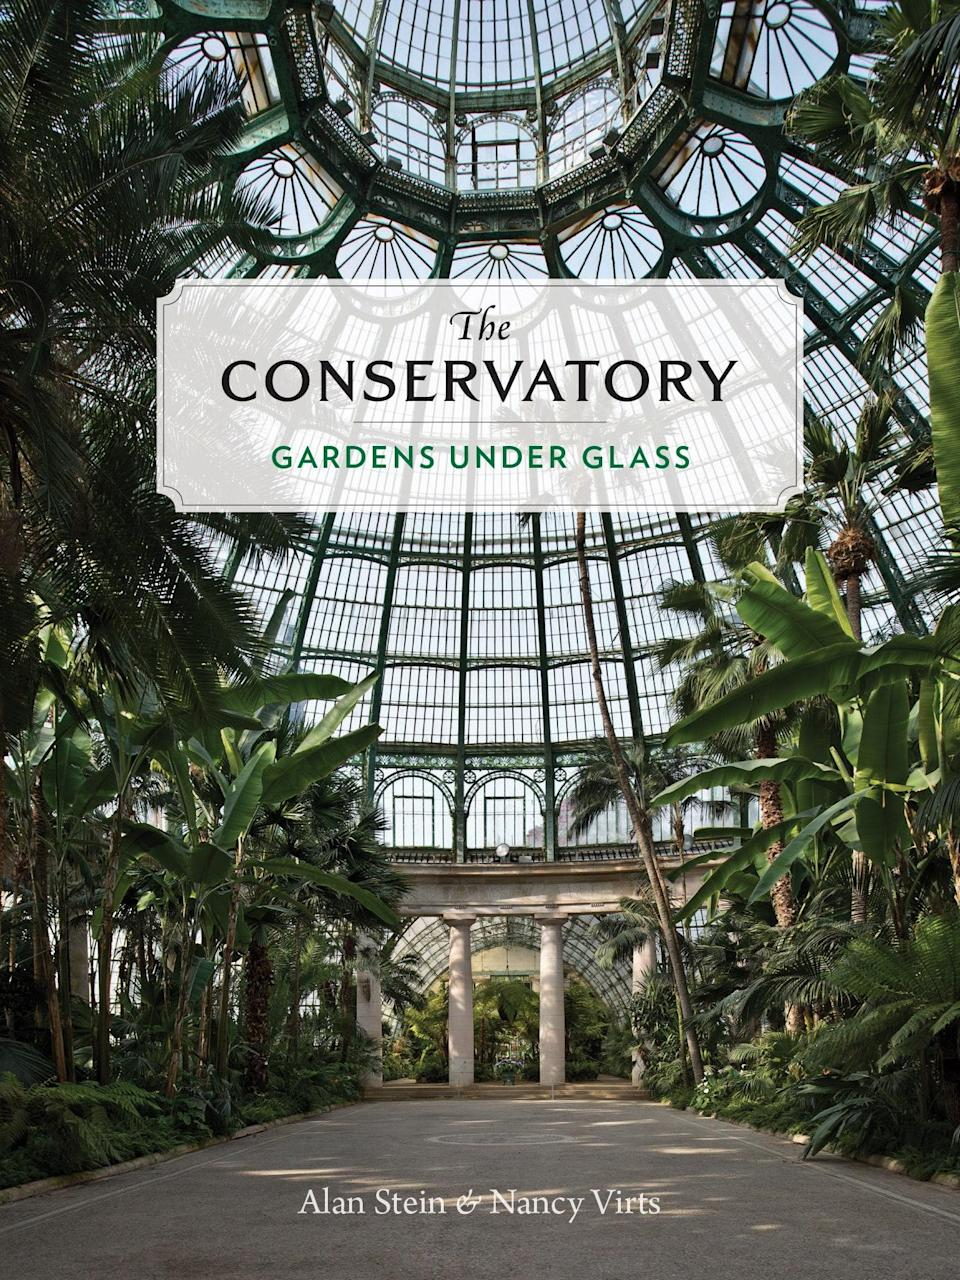 The Conservatory: Gardens Under Glass by Alan Stein and Nancy Virts.